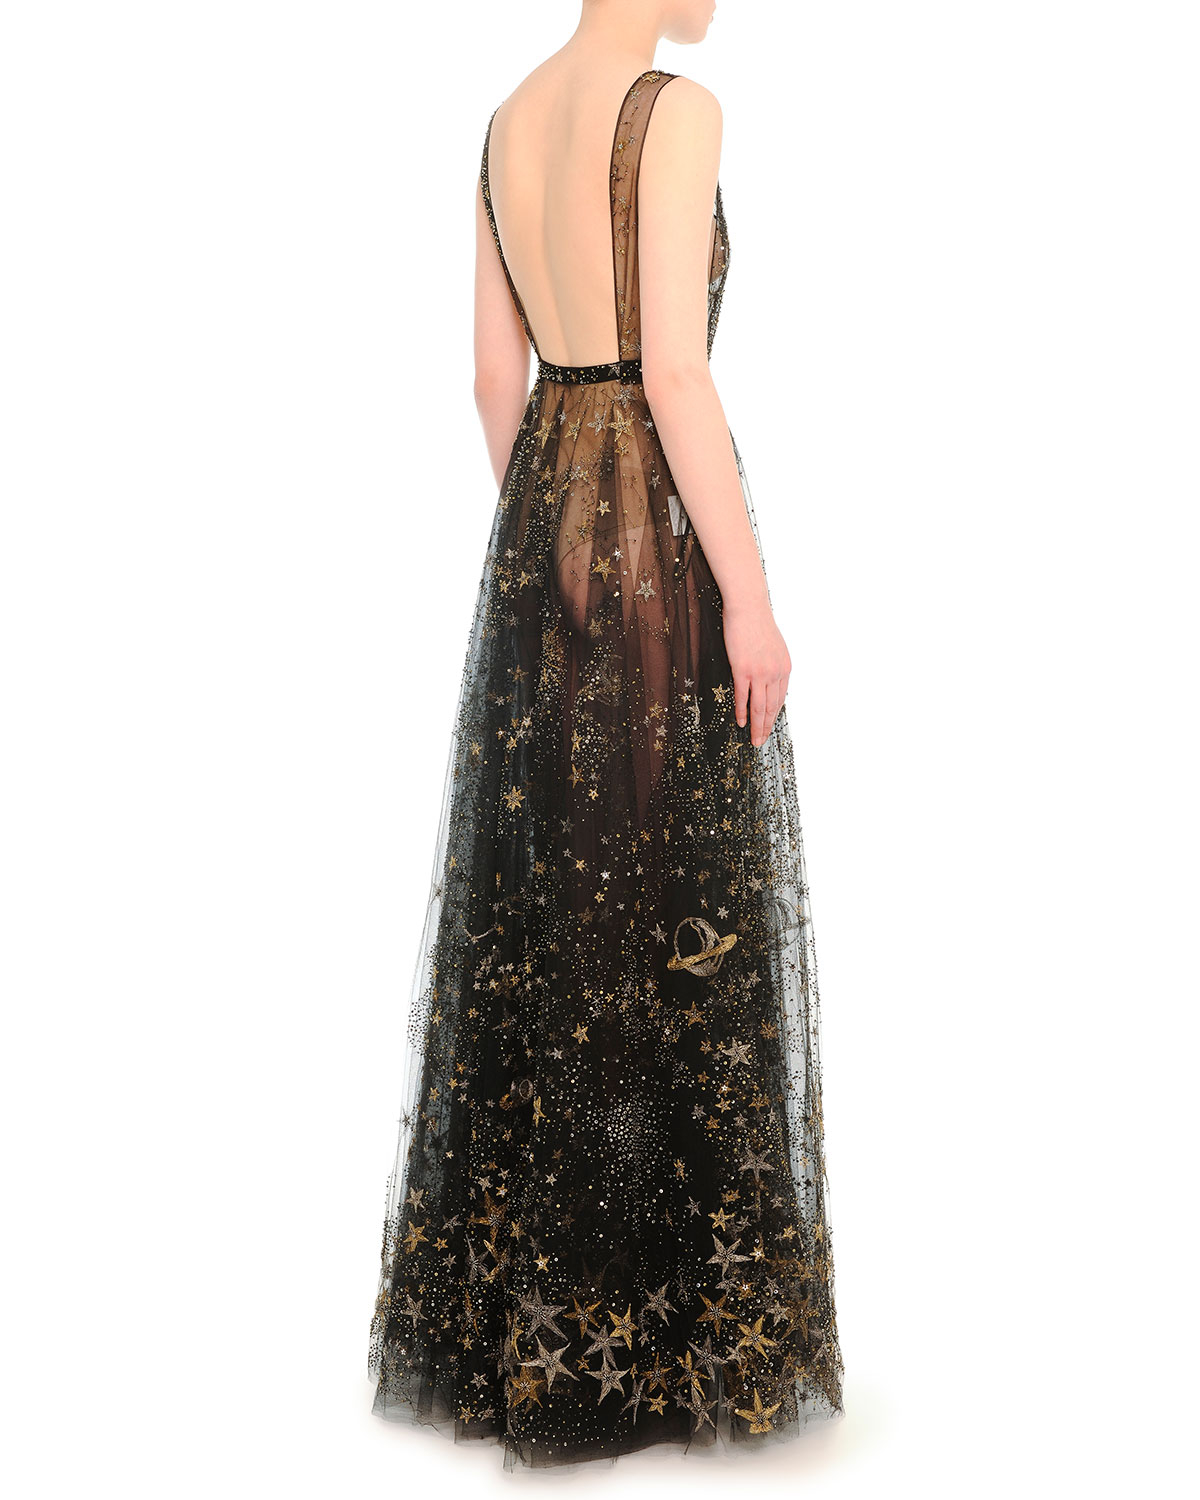 Lyst - Valentino Star And Moon Embroidered Evening Dress in Black